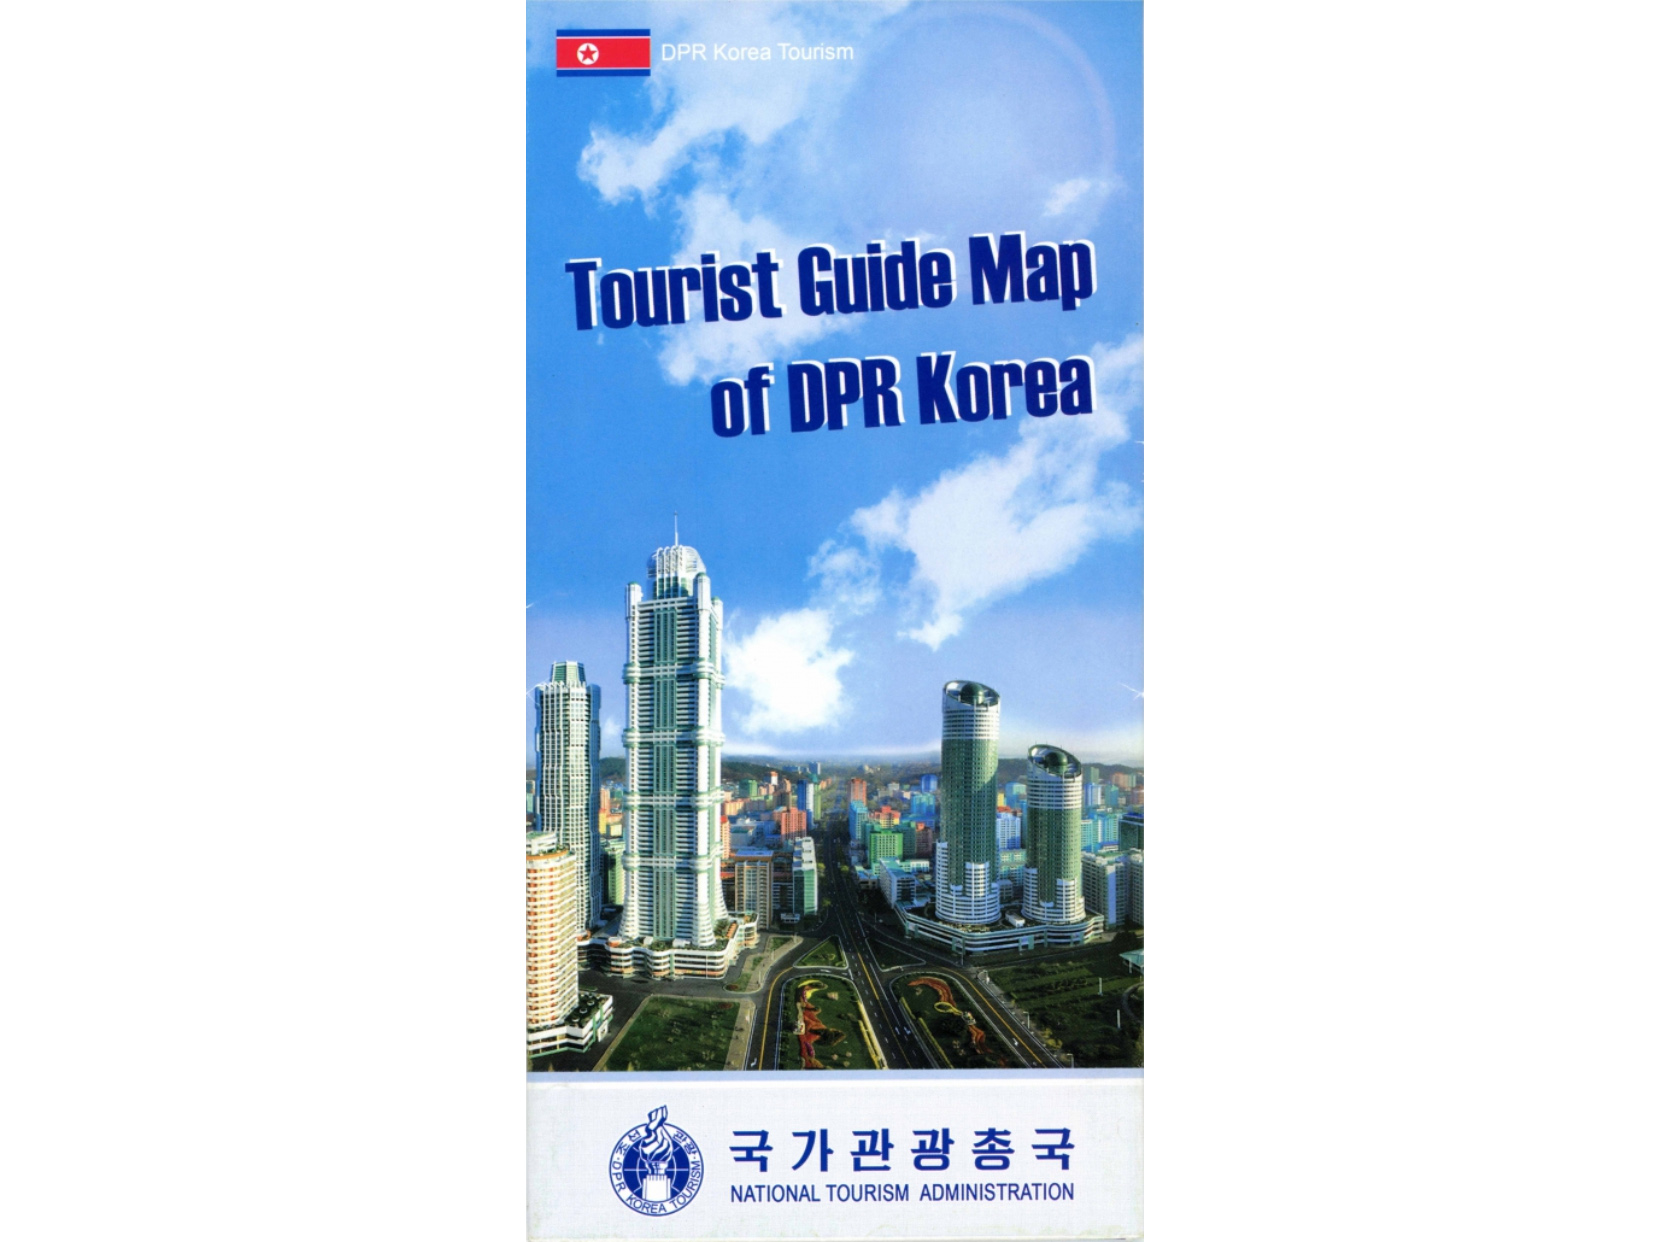 Tourist Guide Map of DPRK